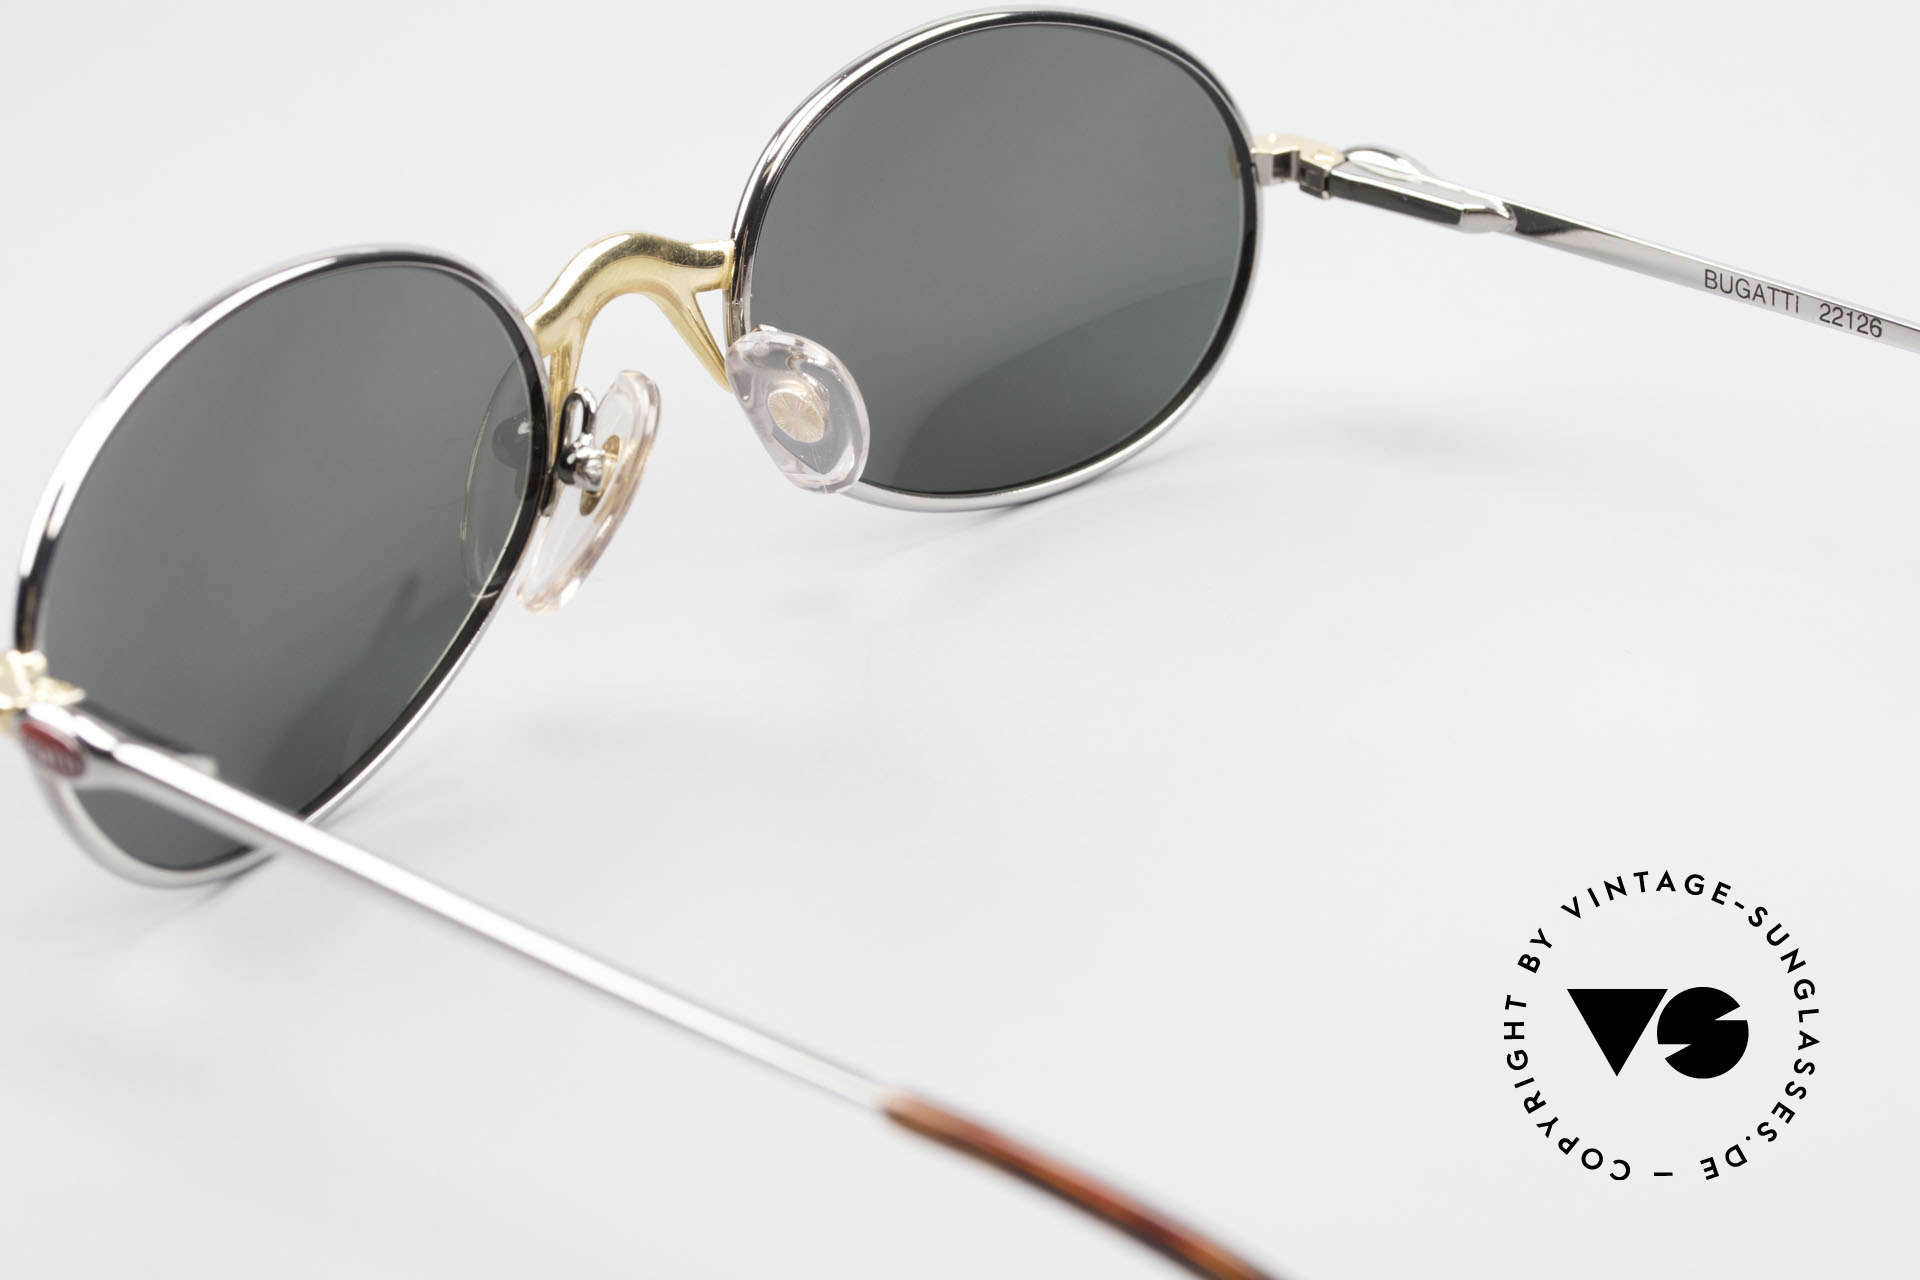 Bugatti 22126 Rare Oval 90's Vintage Shades, with solid G15 green sun lenses for 100% UV protection, Made for Men